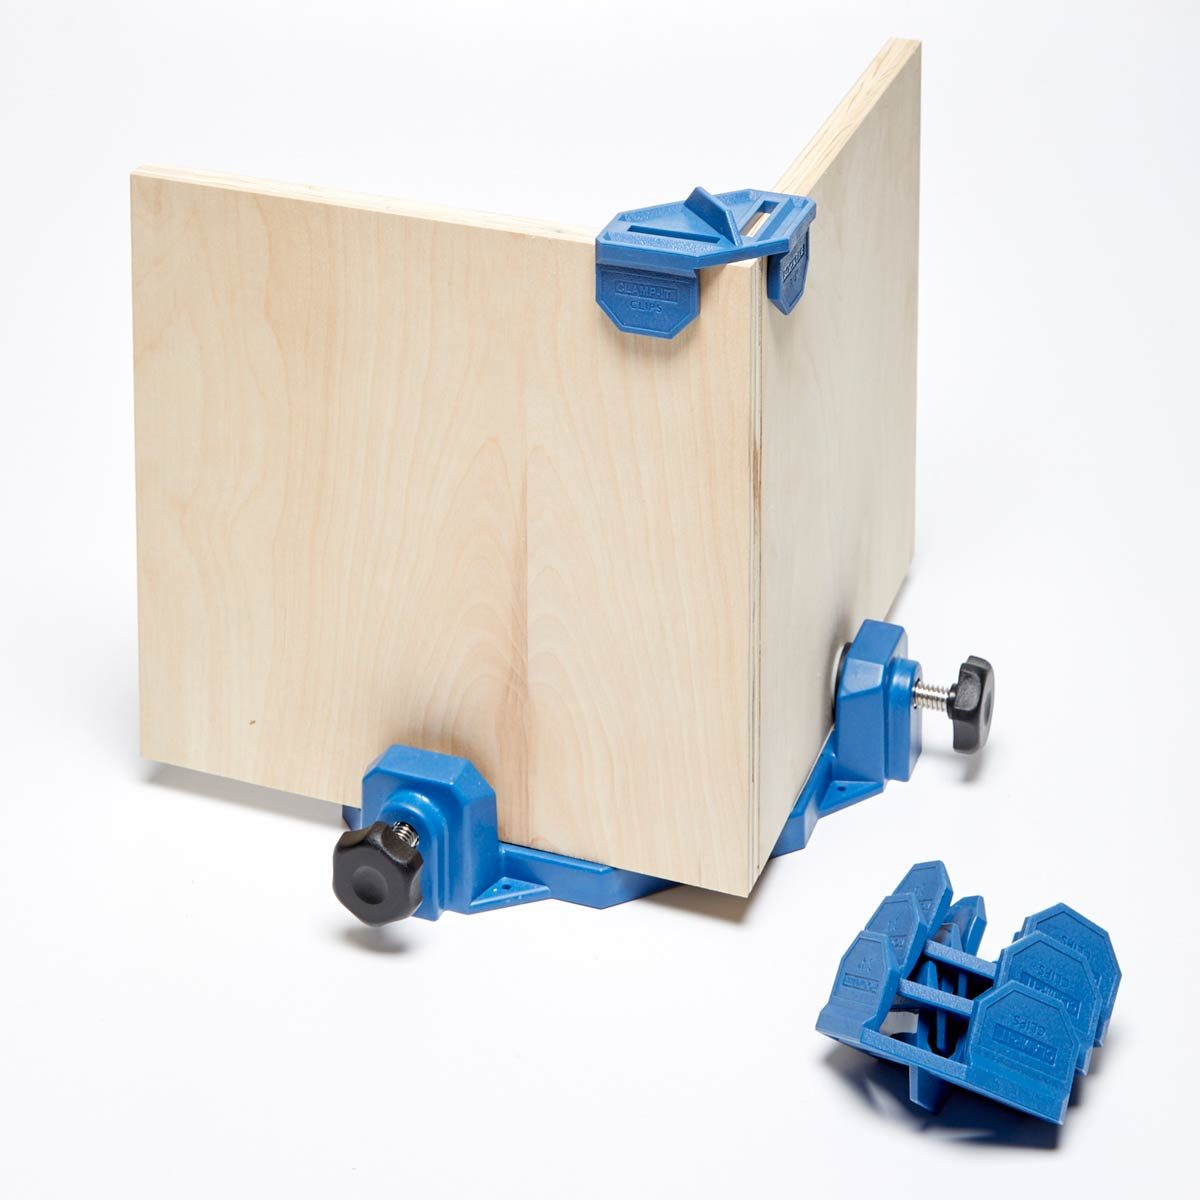 Rockler Visited Family Handyman, This is What We Learned